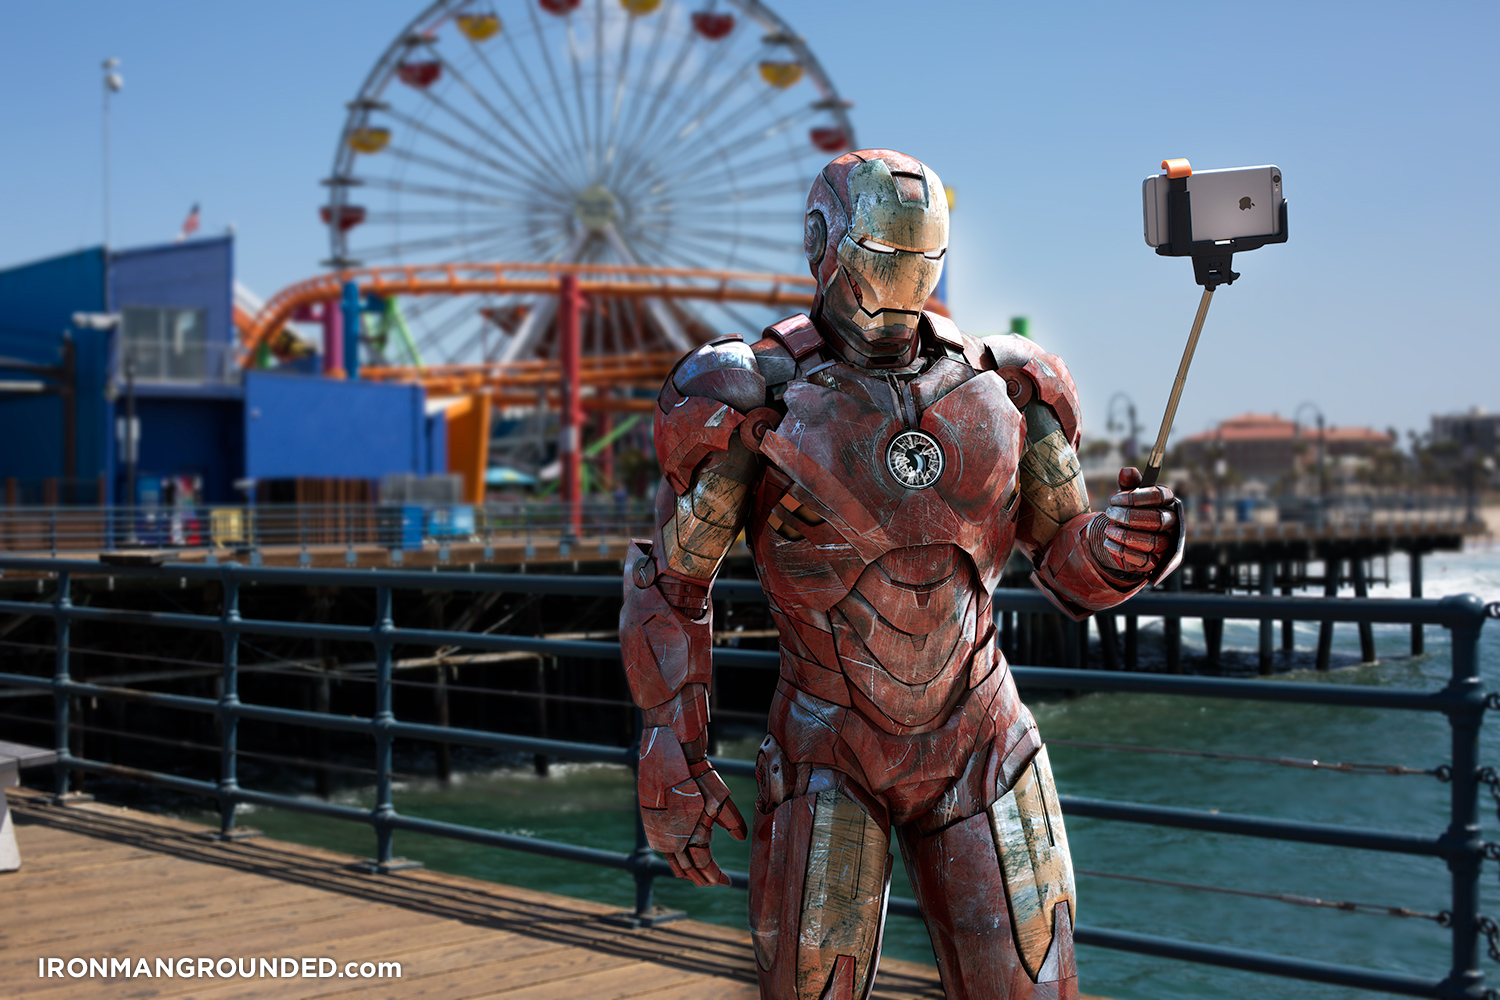 iron_man_grounded_selfie_stick_santa_monica_pier